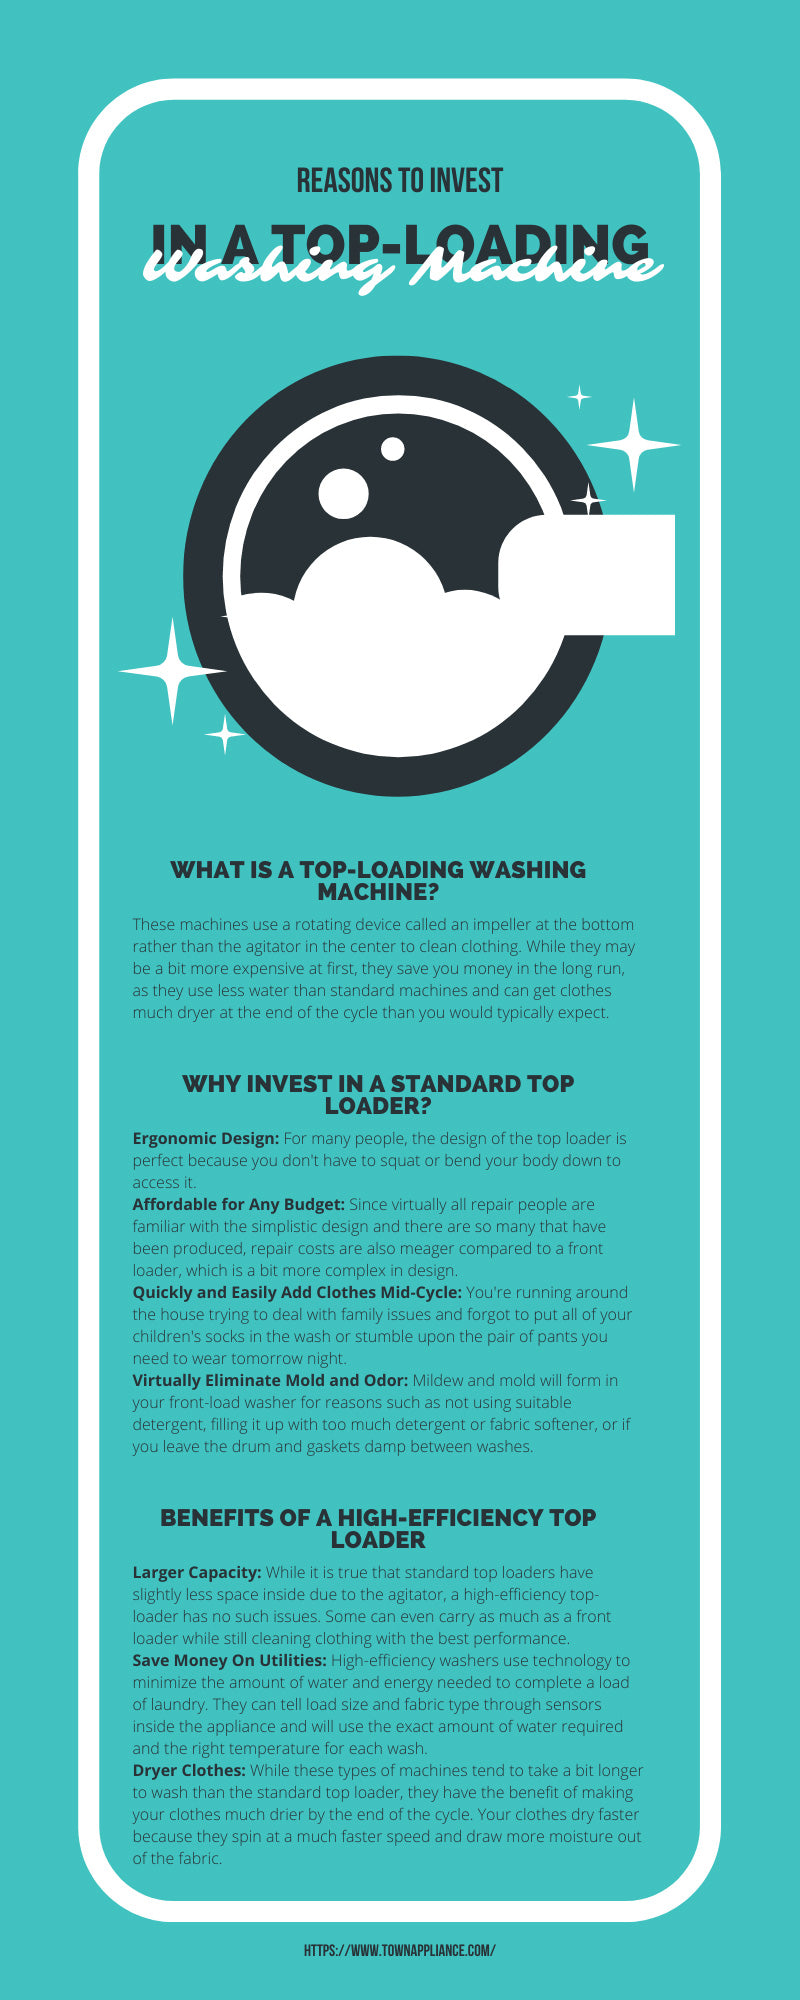 Reasons To Invest In a Top-Loading Washing Machine